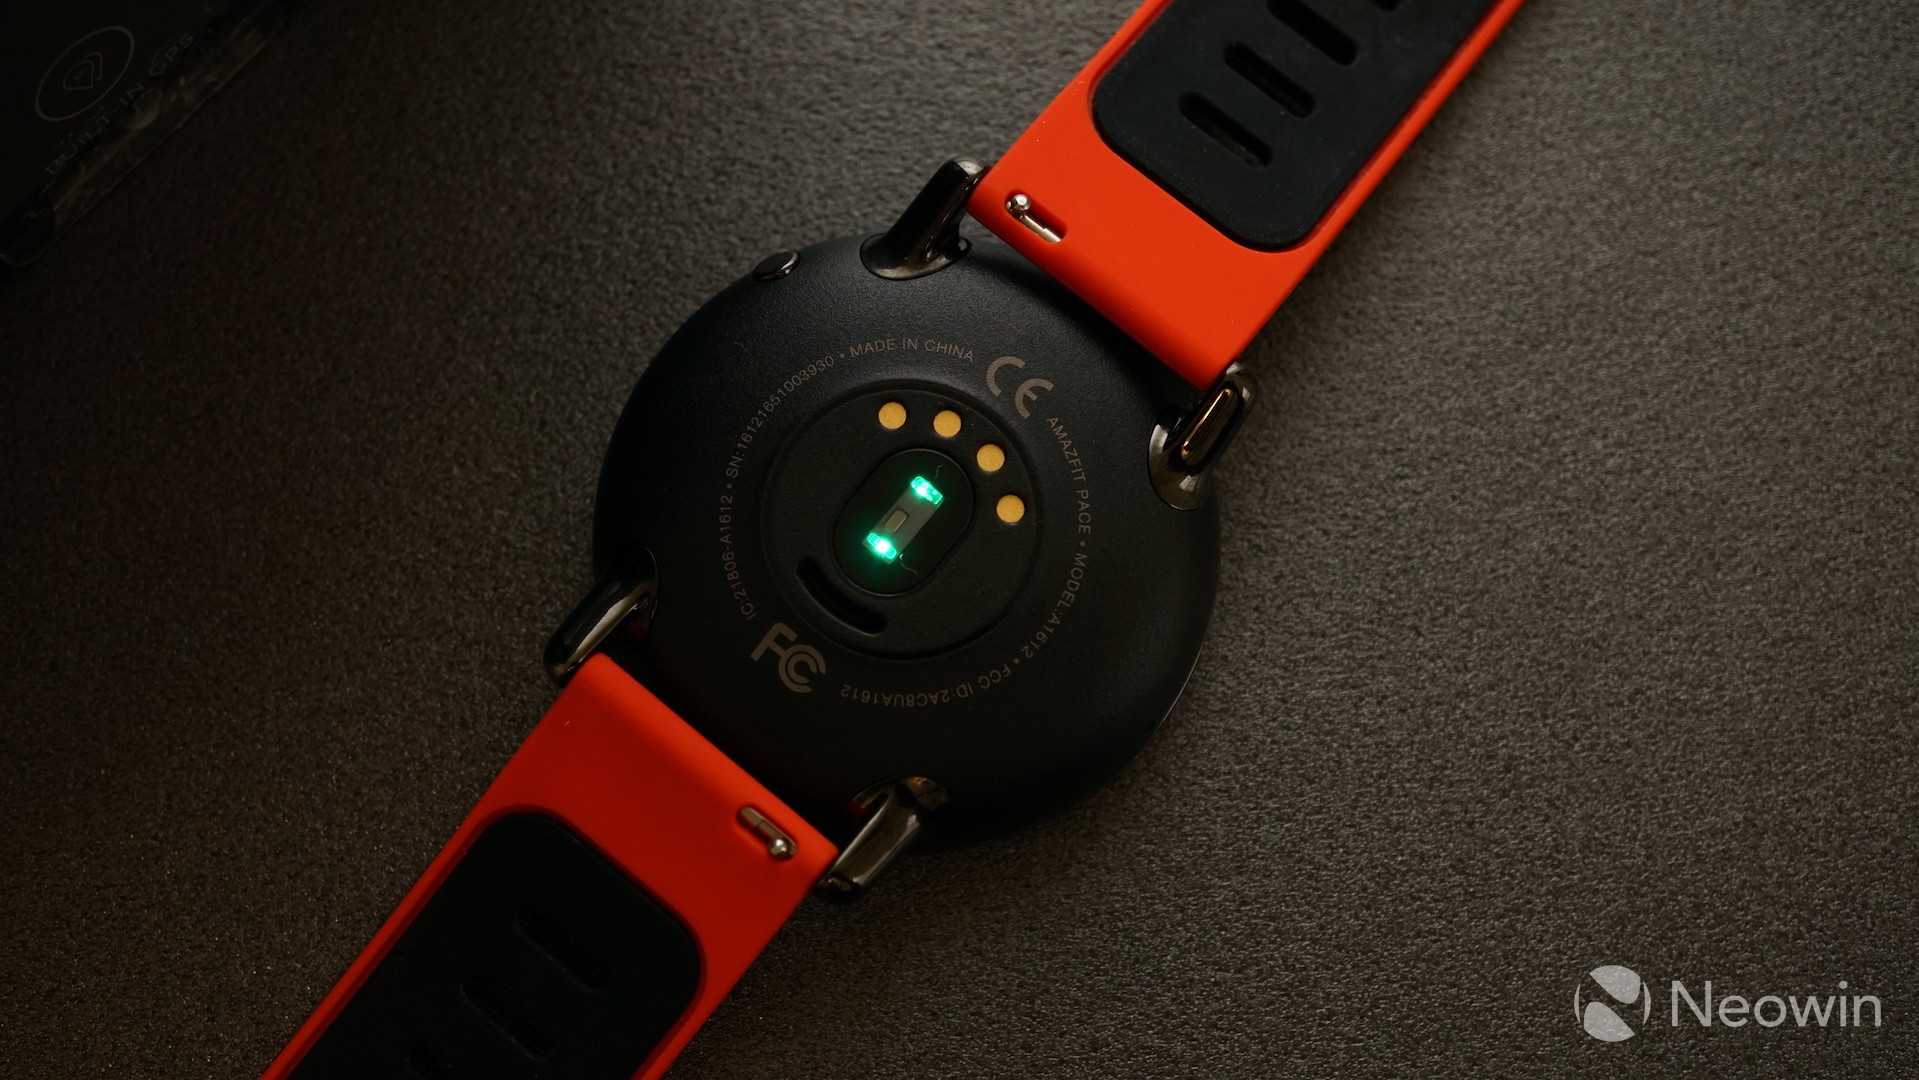 Review Amazfit Pace Is An Activity Tracker That Needs To Hit The Xiaomi Equator Underside Of Watch Houses Heart Rate Sensor And Charging Pins While Underbelly Made Plastic It Feels Good On Wrist